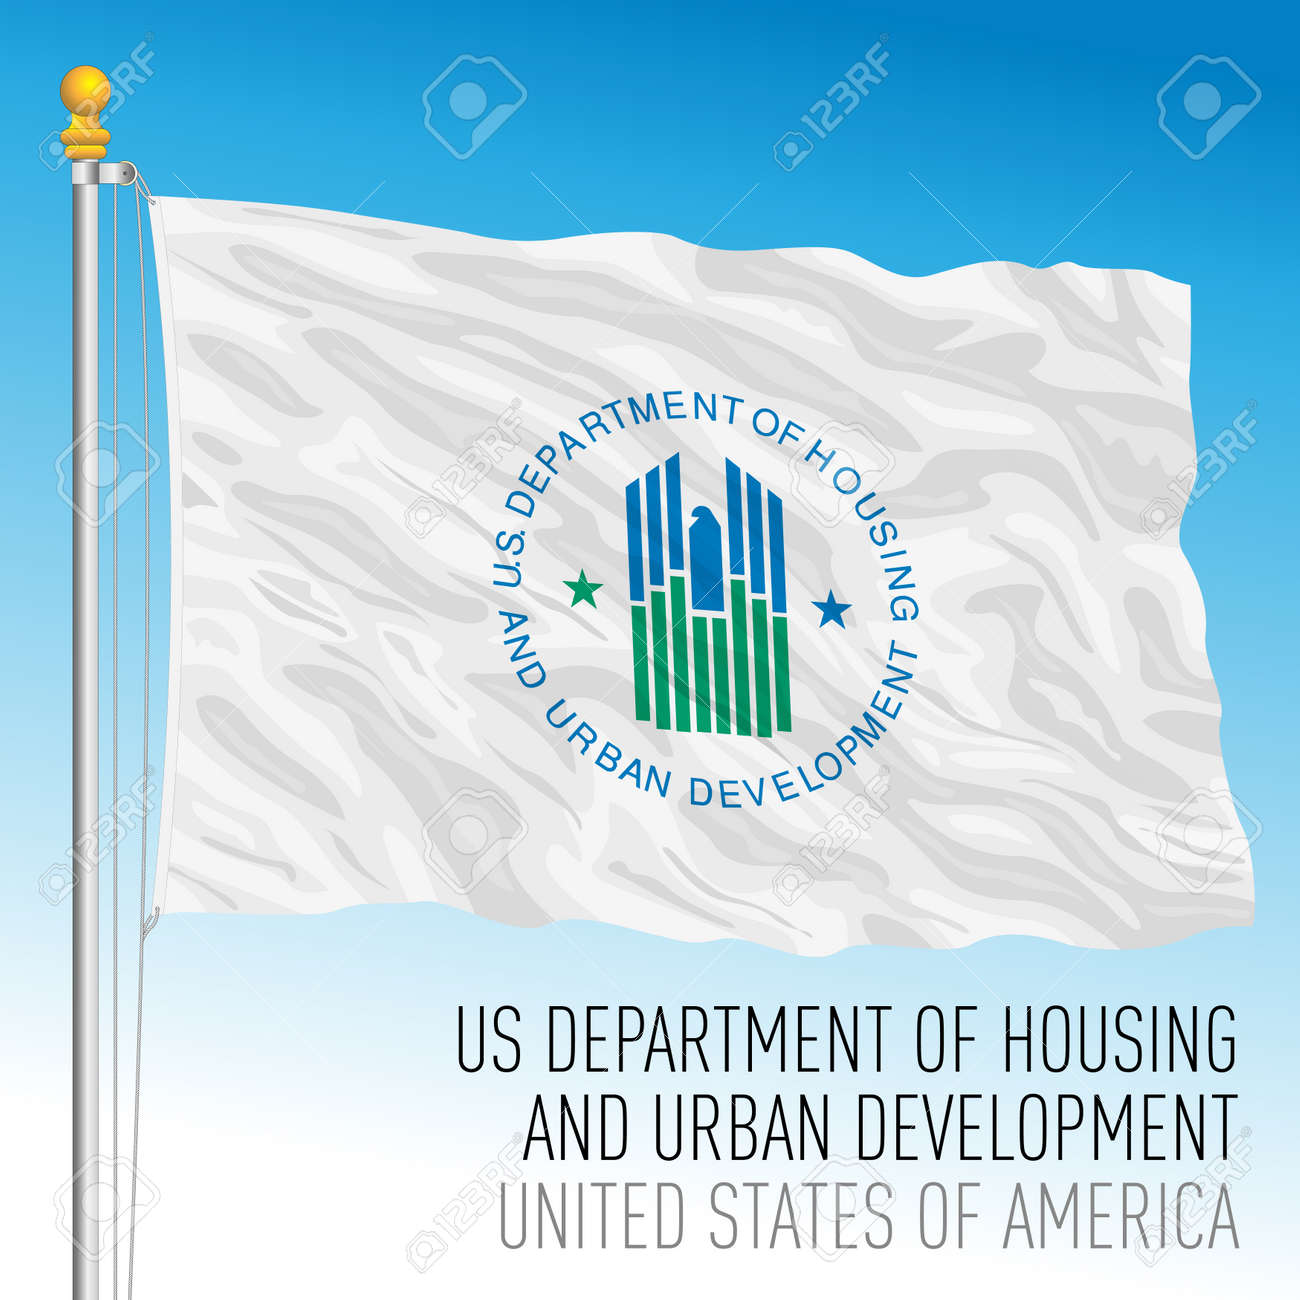 US Department of Housing and Urban Development flag, United States of America, vector illustration - 172905541